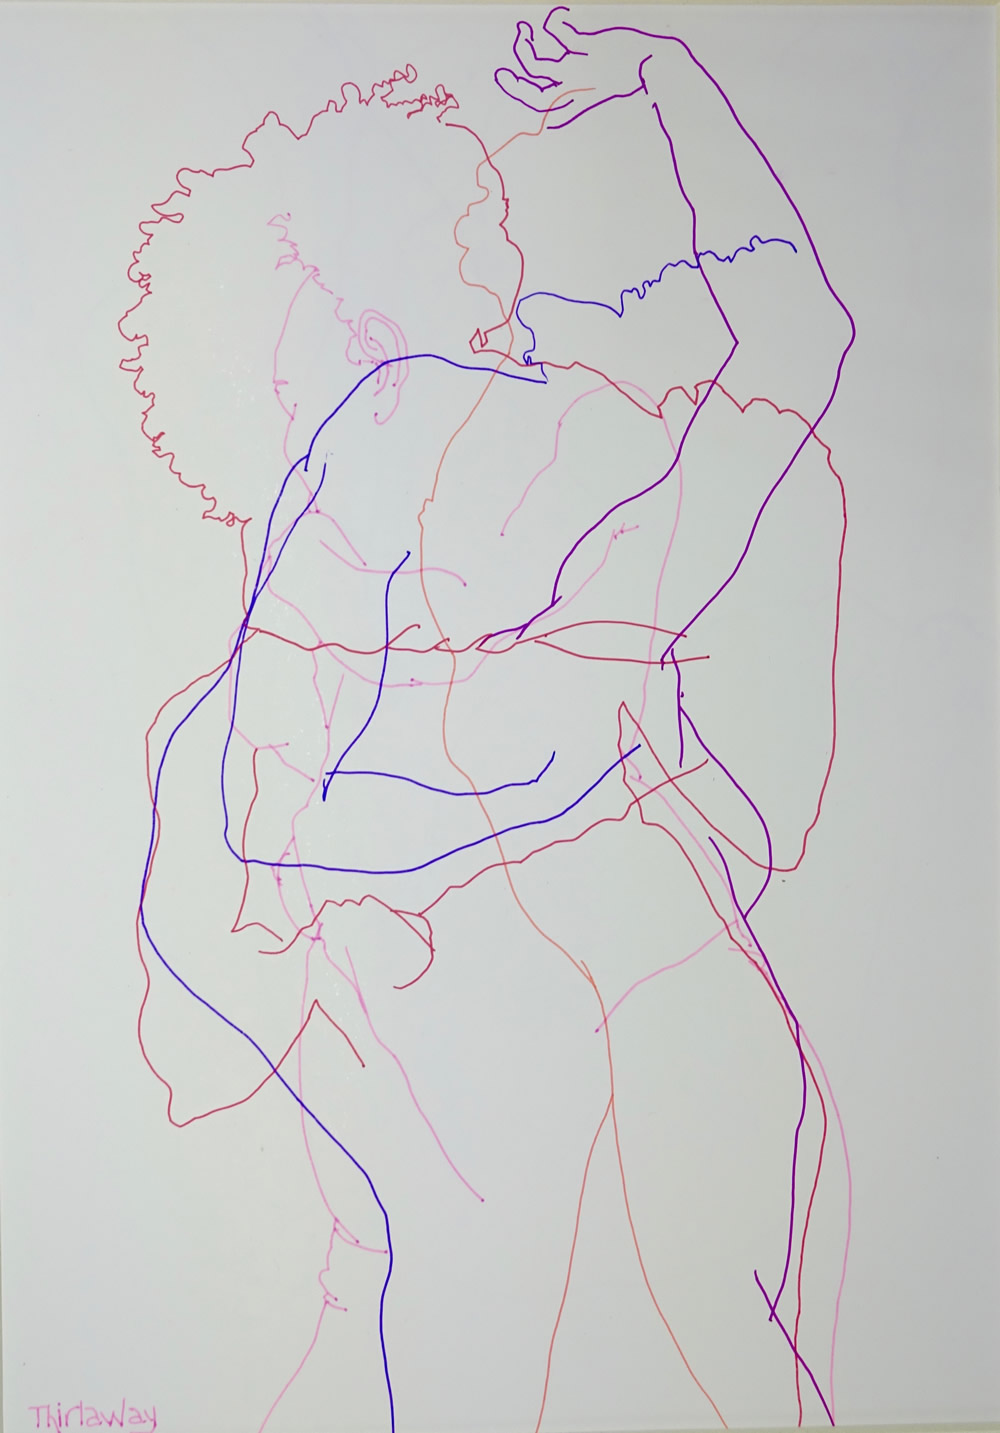 Chrissy Thirlaway, Blind Drawing 15th March, Pen on paper, 25x32cm